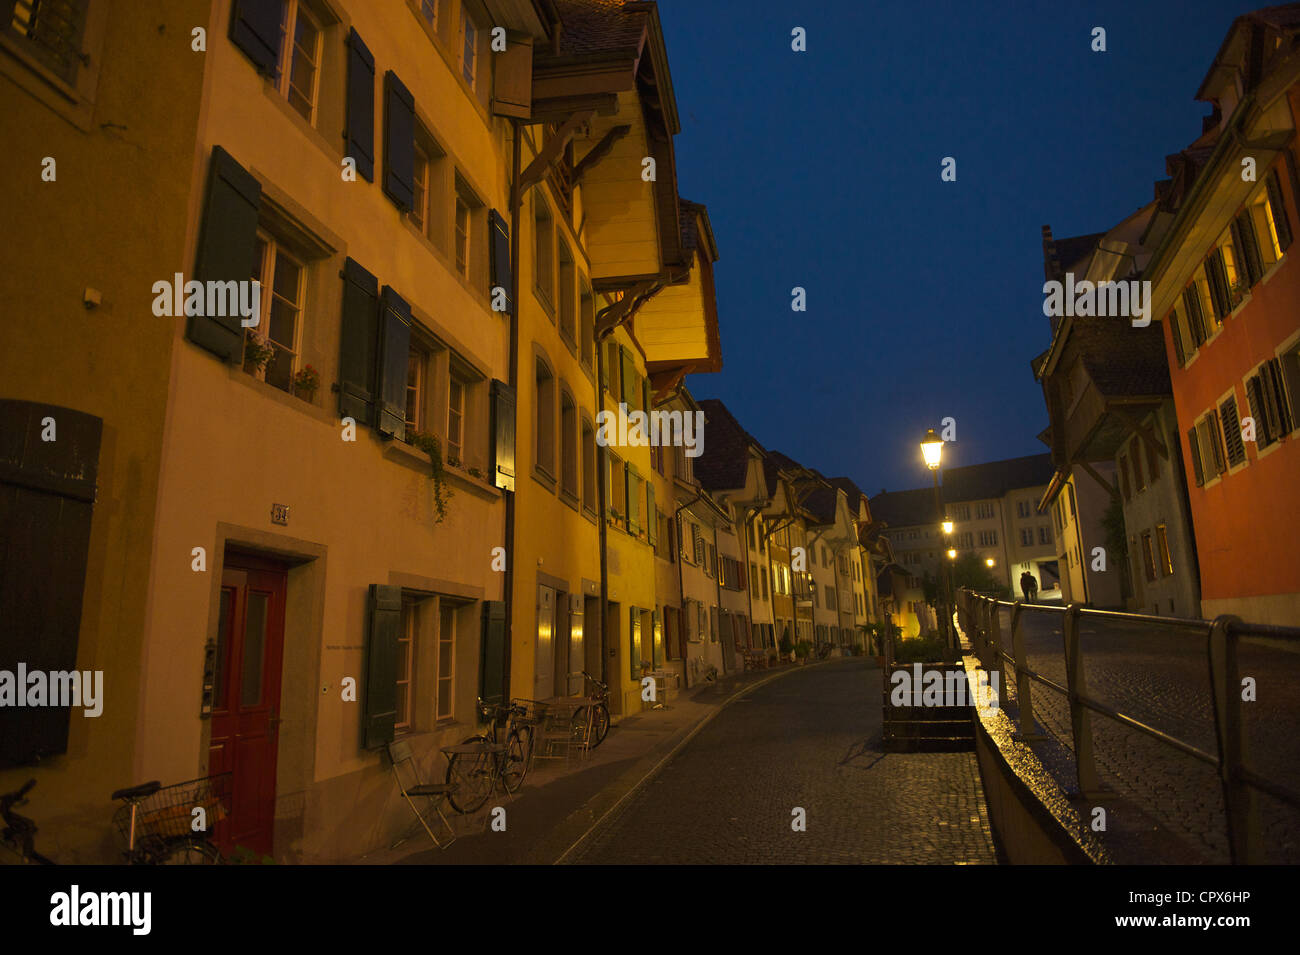 Old city of Aarau in the blue hour. The newly made inner circle roads were just completed in the year 2011/2012 - Stock Image